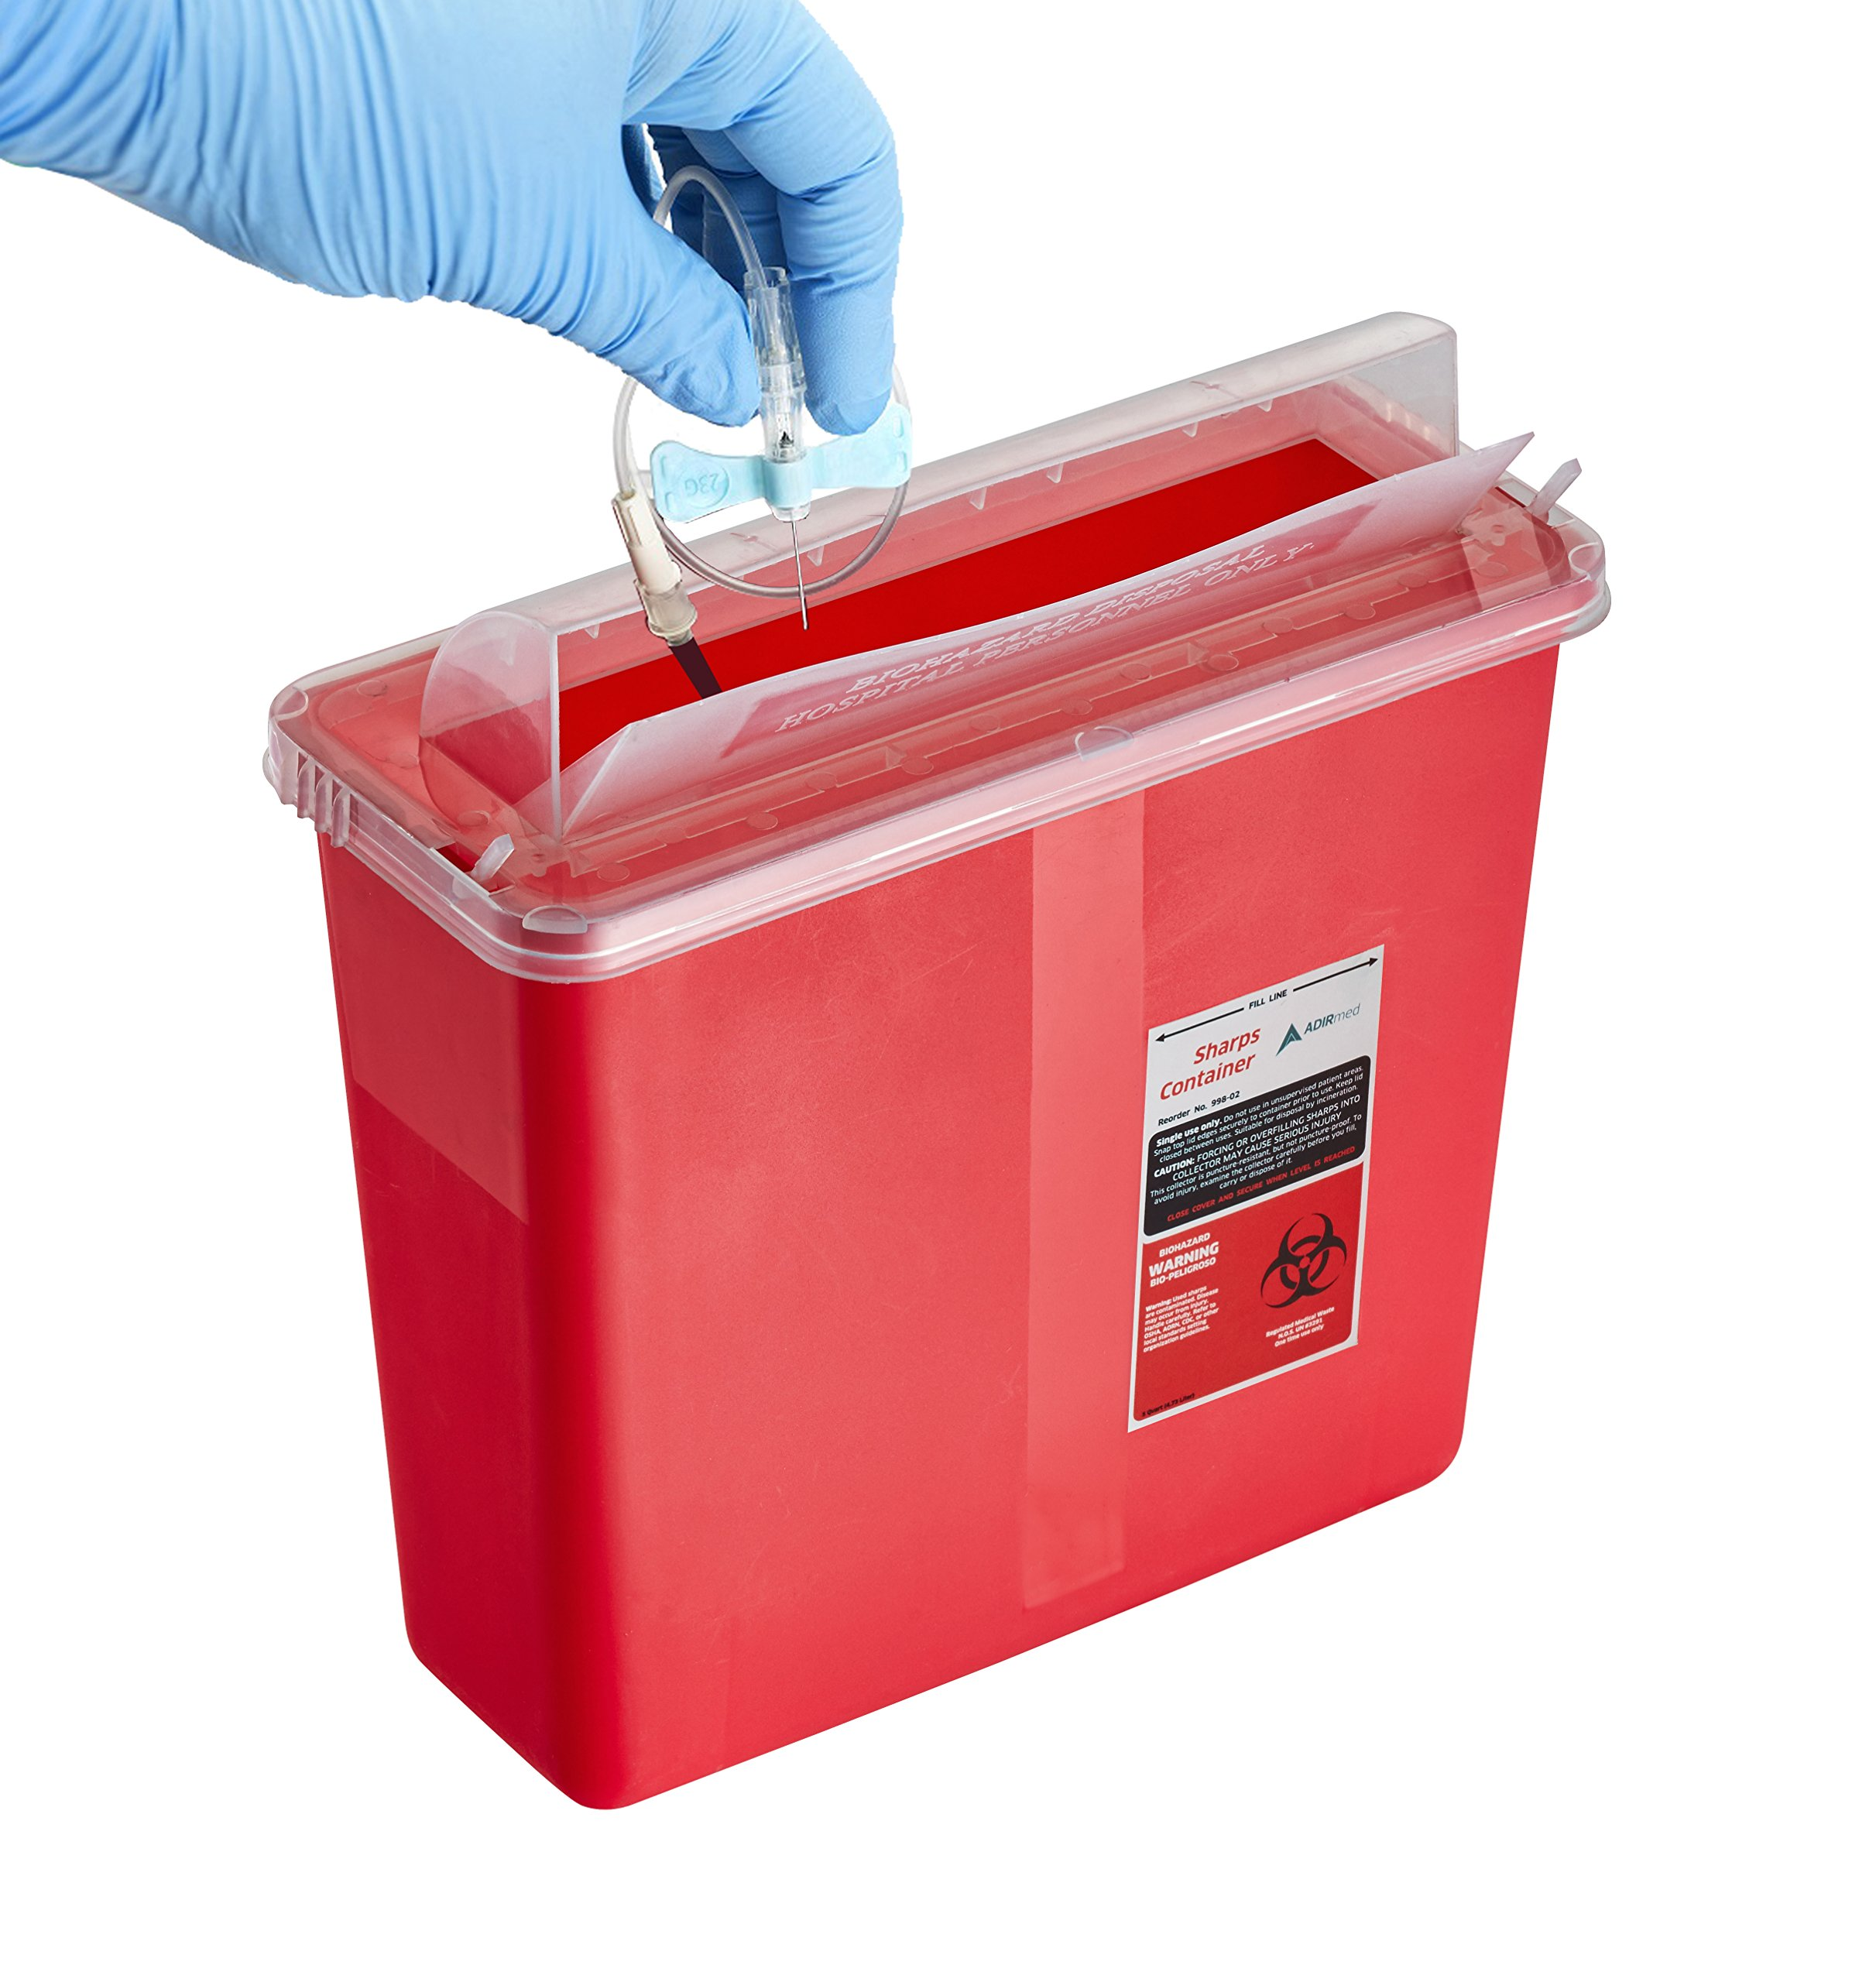 AdirMed Sharps & Needle Biohazard Disposal Container - 5 Quart - Mailbox Style Horizontal Lid - 1 Pack by Adir Med (Image #2)